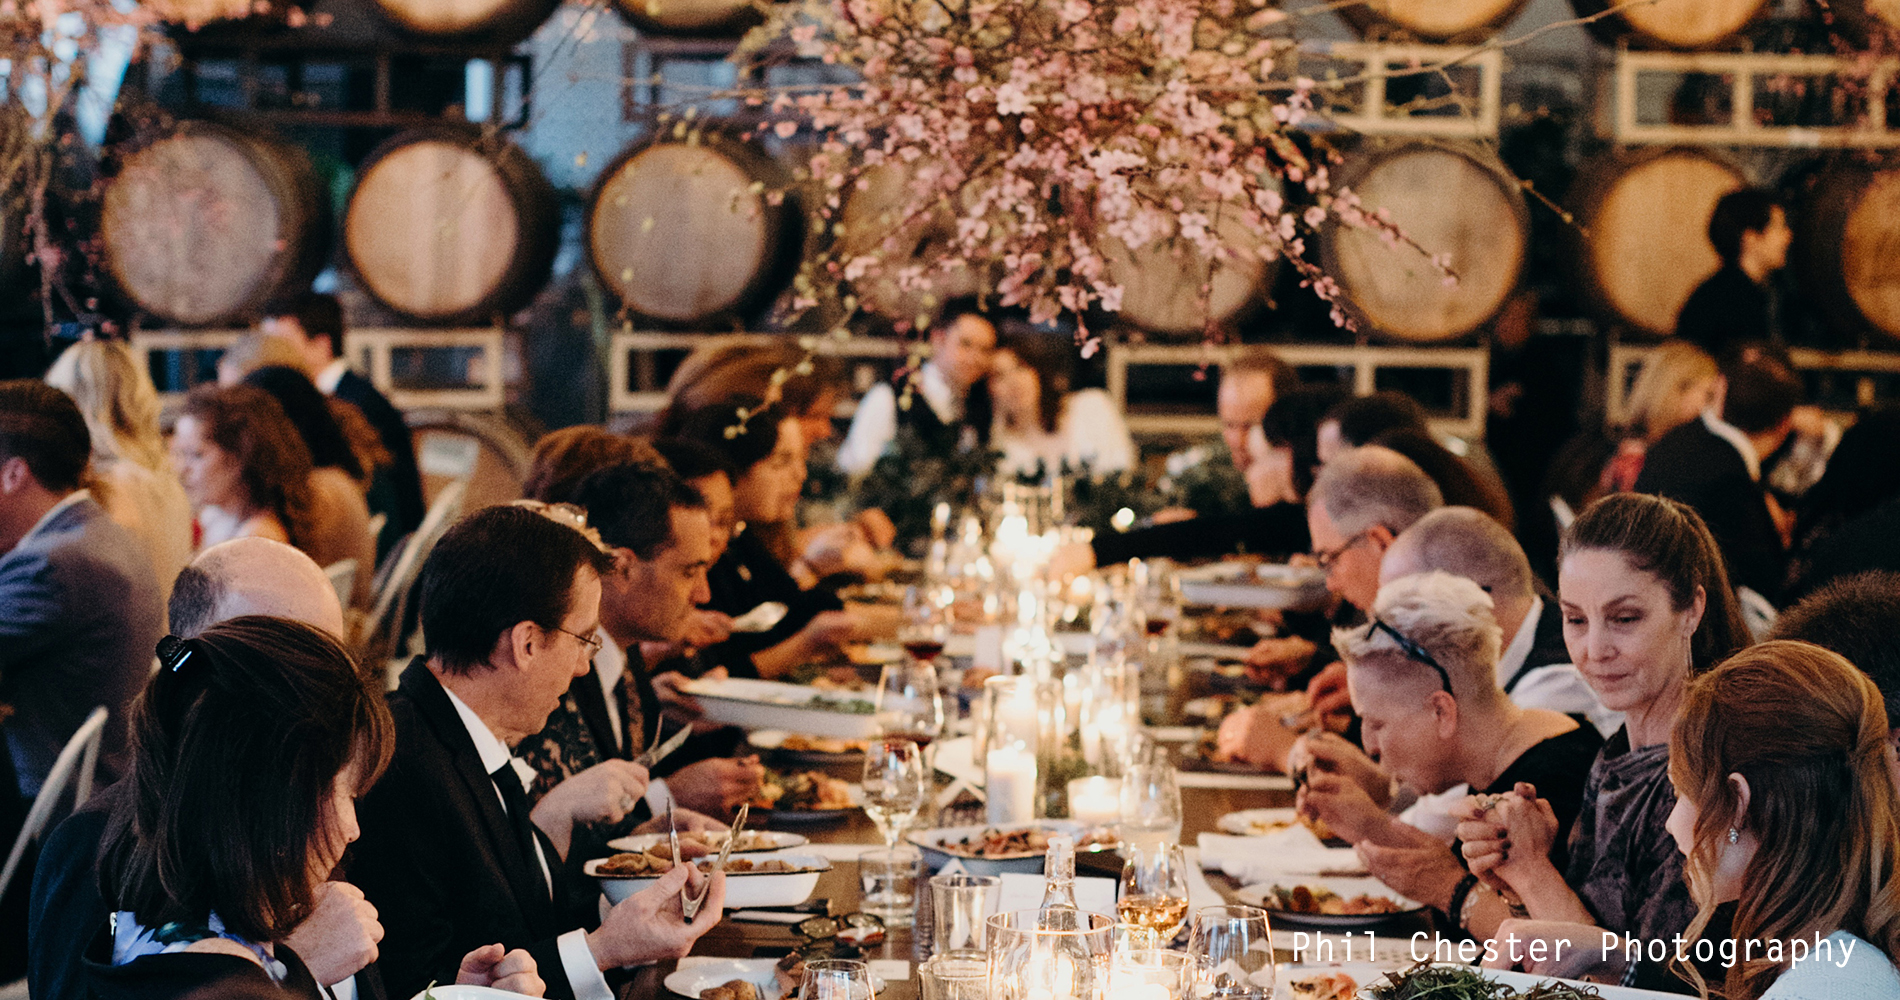 Phil_Chester_Photography_Weddings_Wedding_Events_Design_Wedding_Cake_Corporate_Business_Meeting_Sales_Training_Event_Marketing_Oregon_Portland_Adventure_Winery_Taproom_Event-Space_Dinner_Party_Restaurant_2